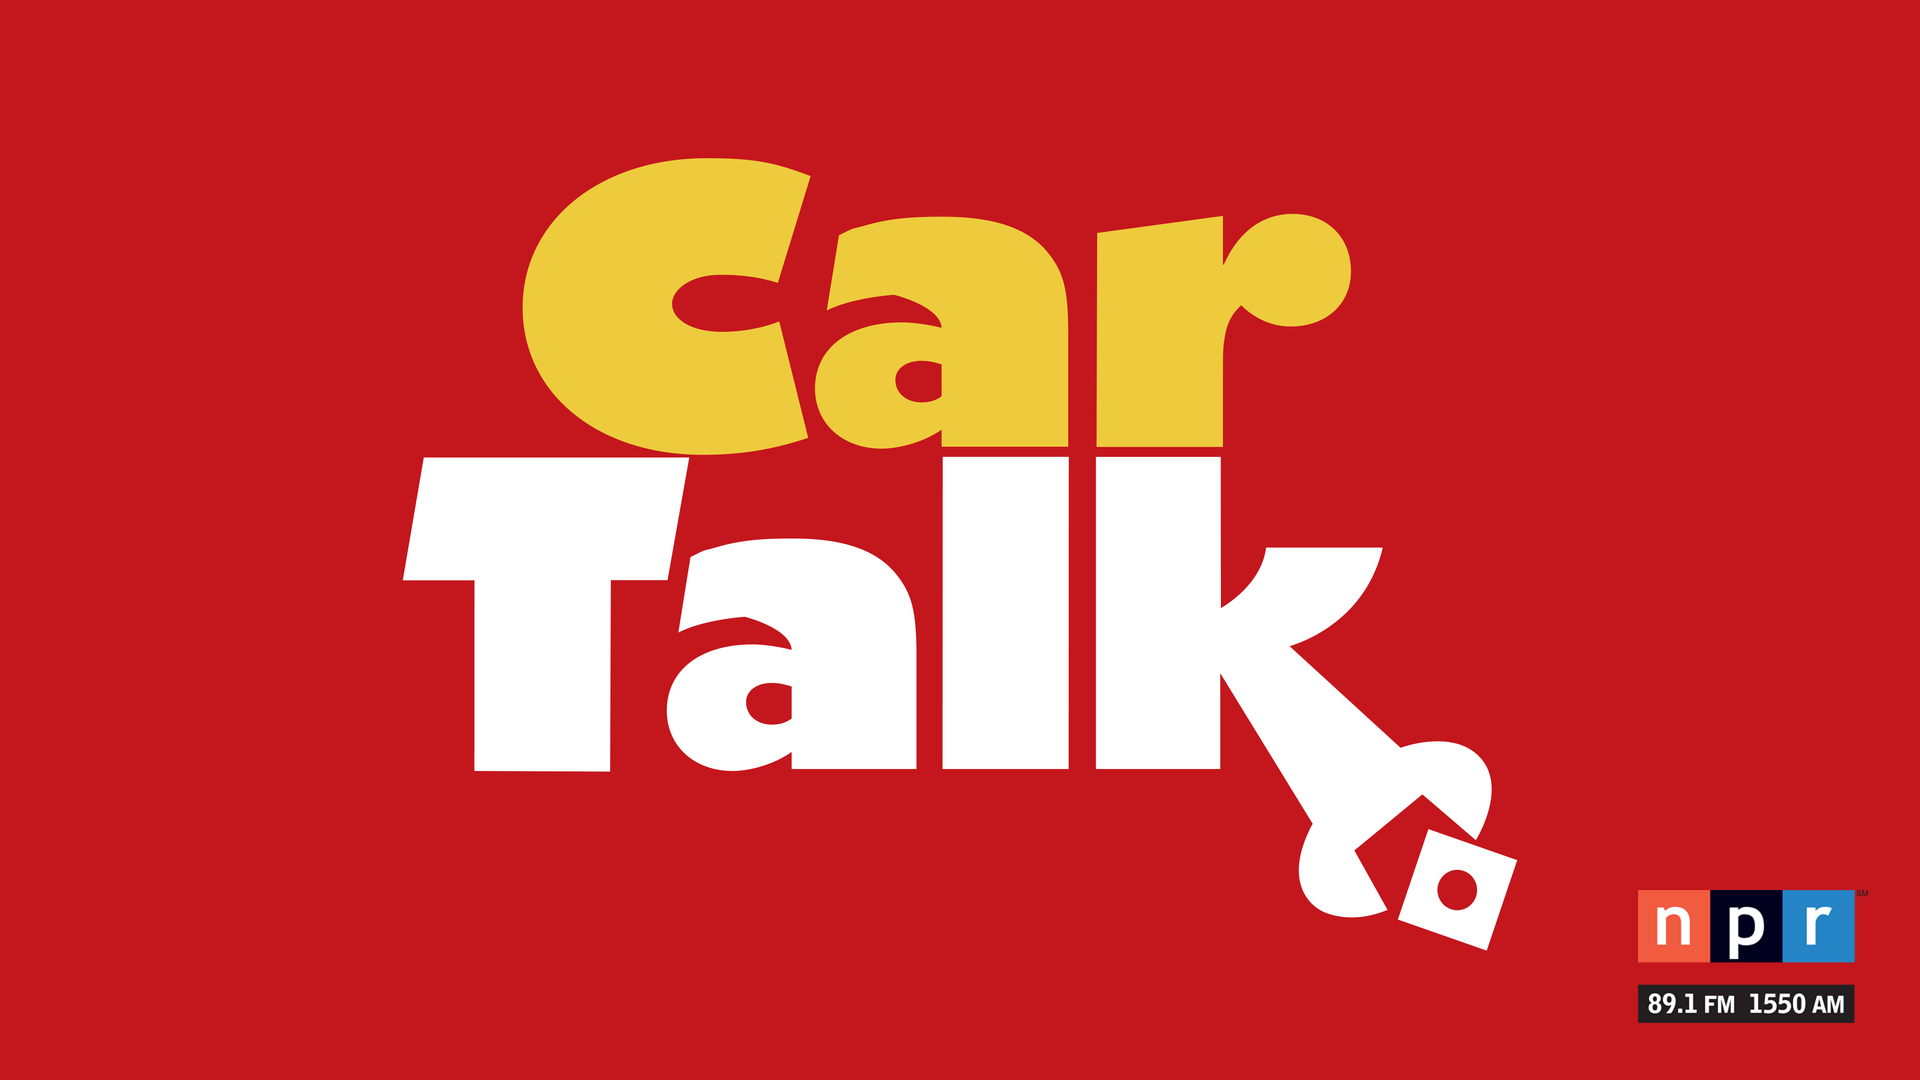 Car Talk began as a local program on WBUR, its longtime home base in Boston, in 1977.